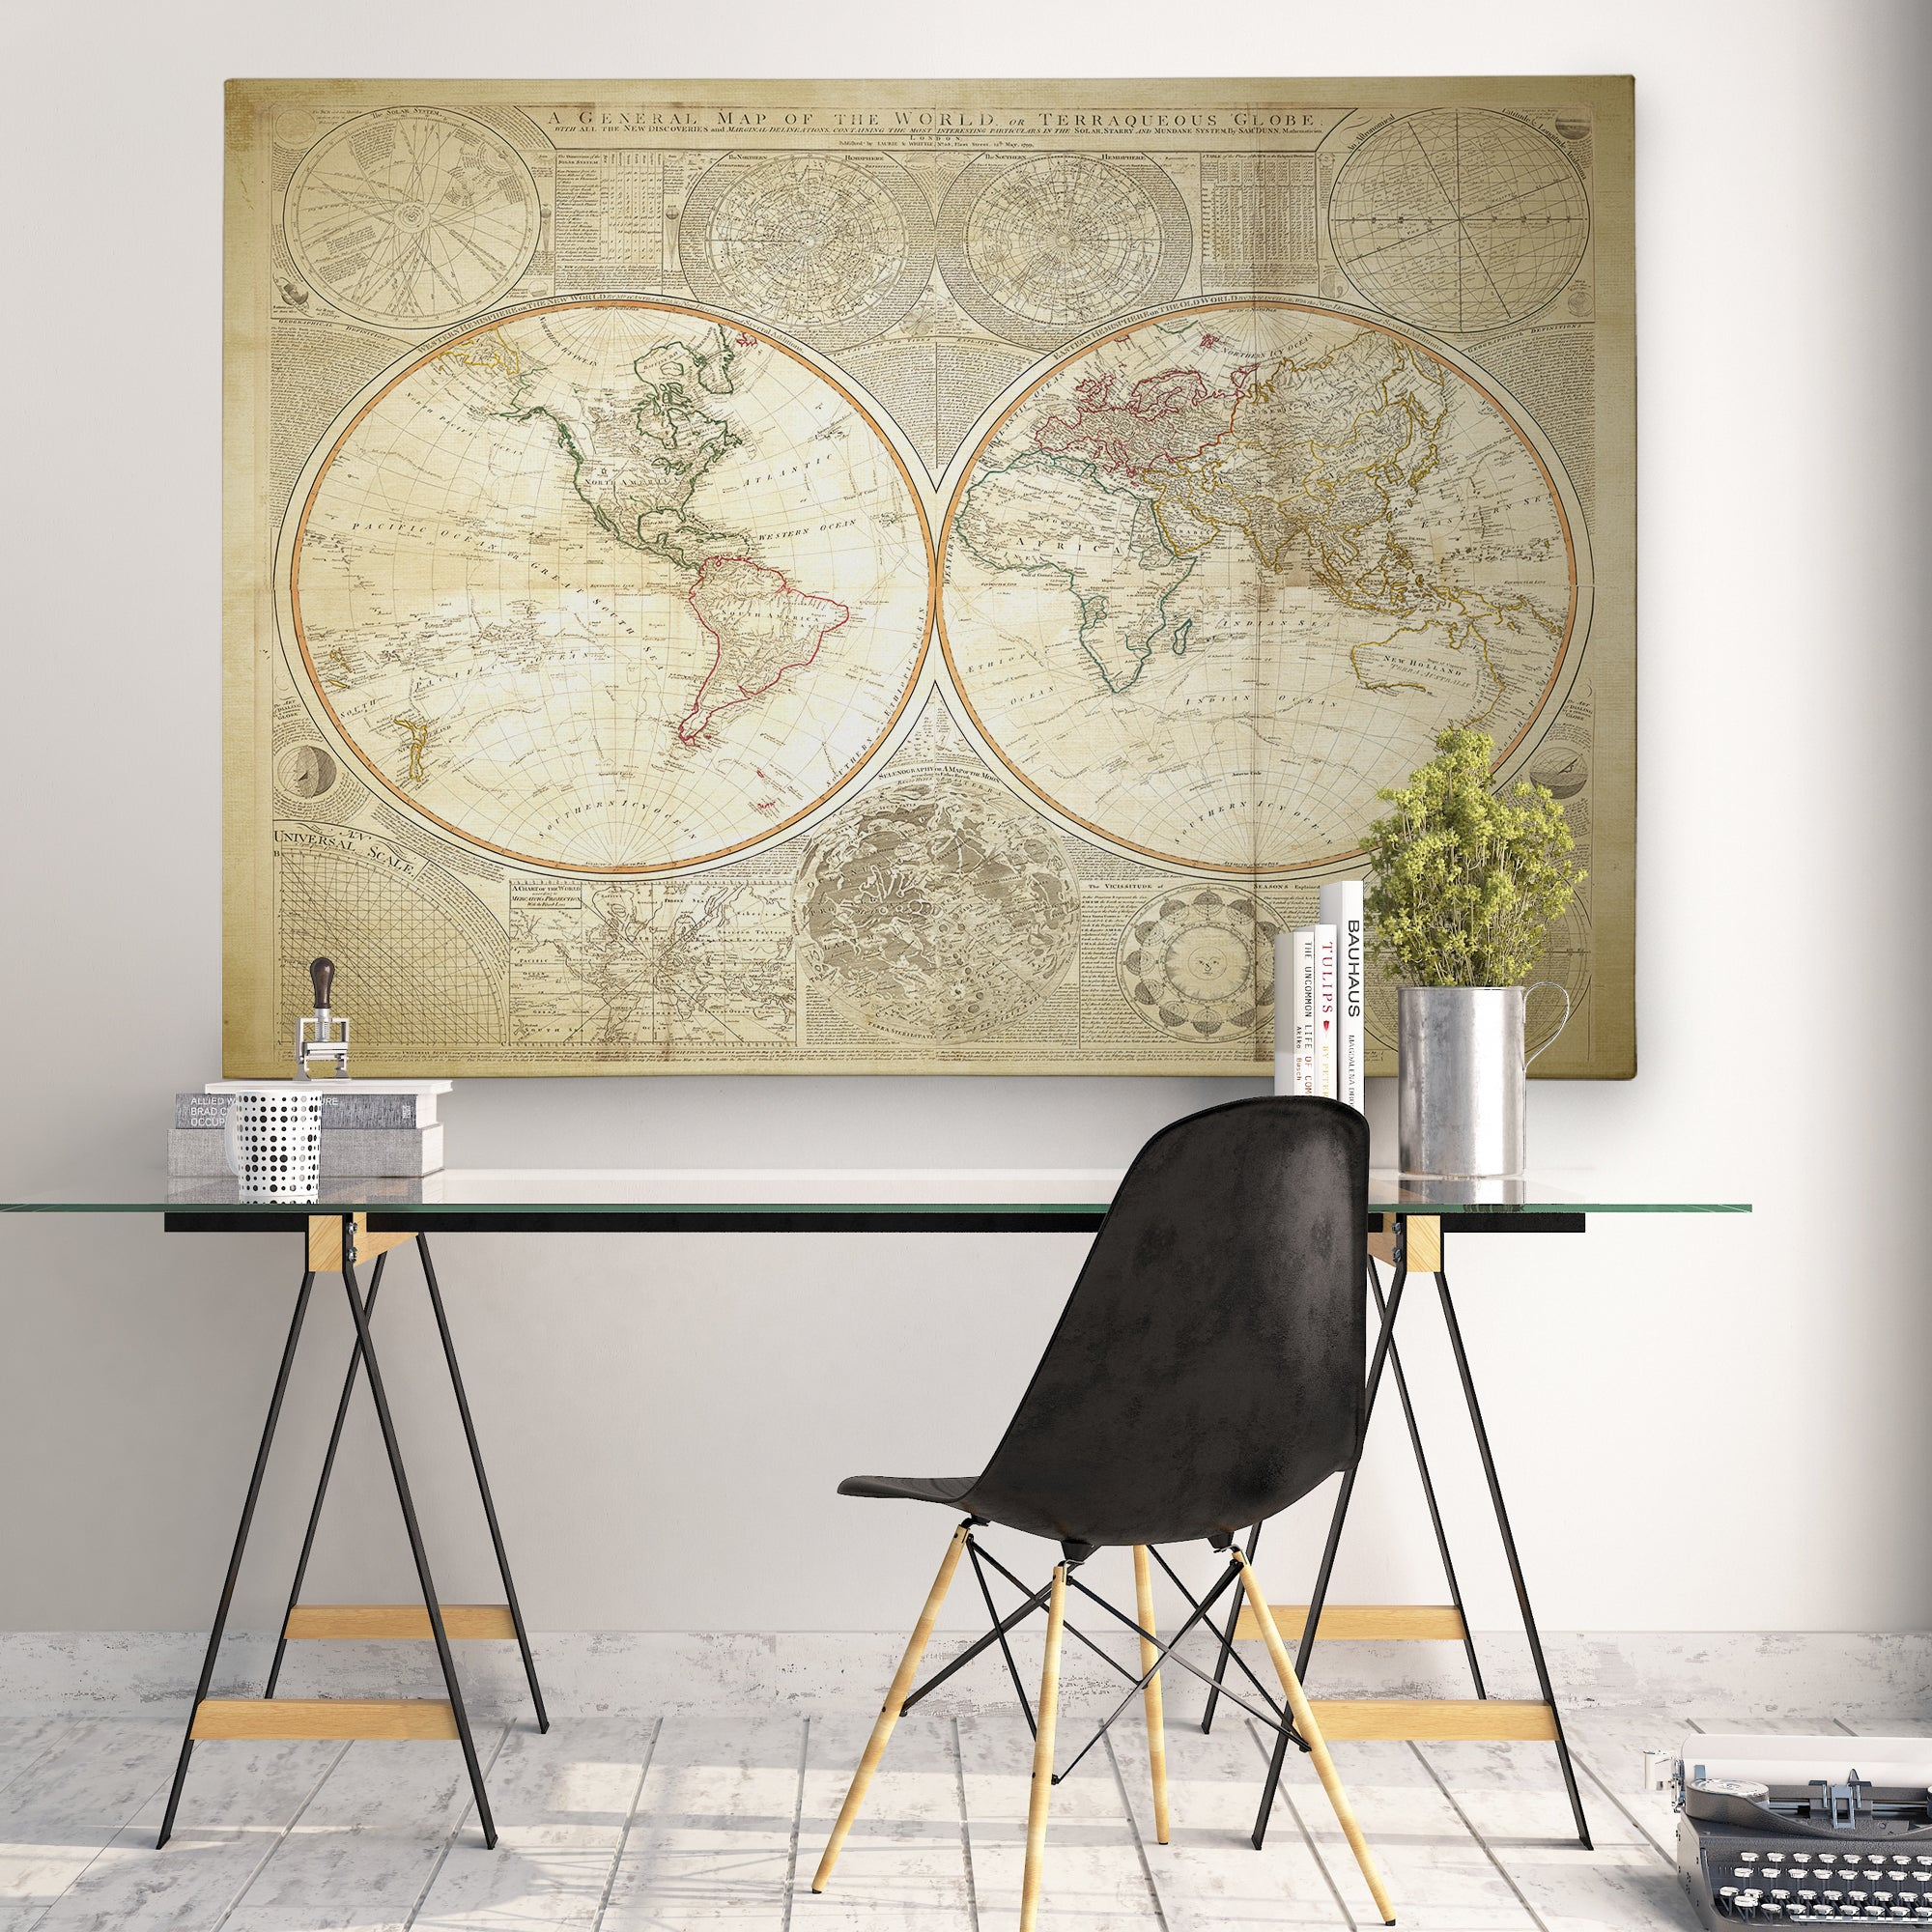 Shop vintage world map ii premium gallery wrapped canvas on sale shop vintage world map ii premium gallery wrapped canvas on sale free shipping on orders over 45 overstock 14491077 gumiabroncs Choice Image